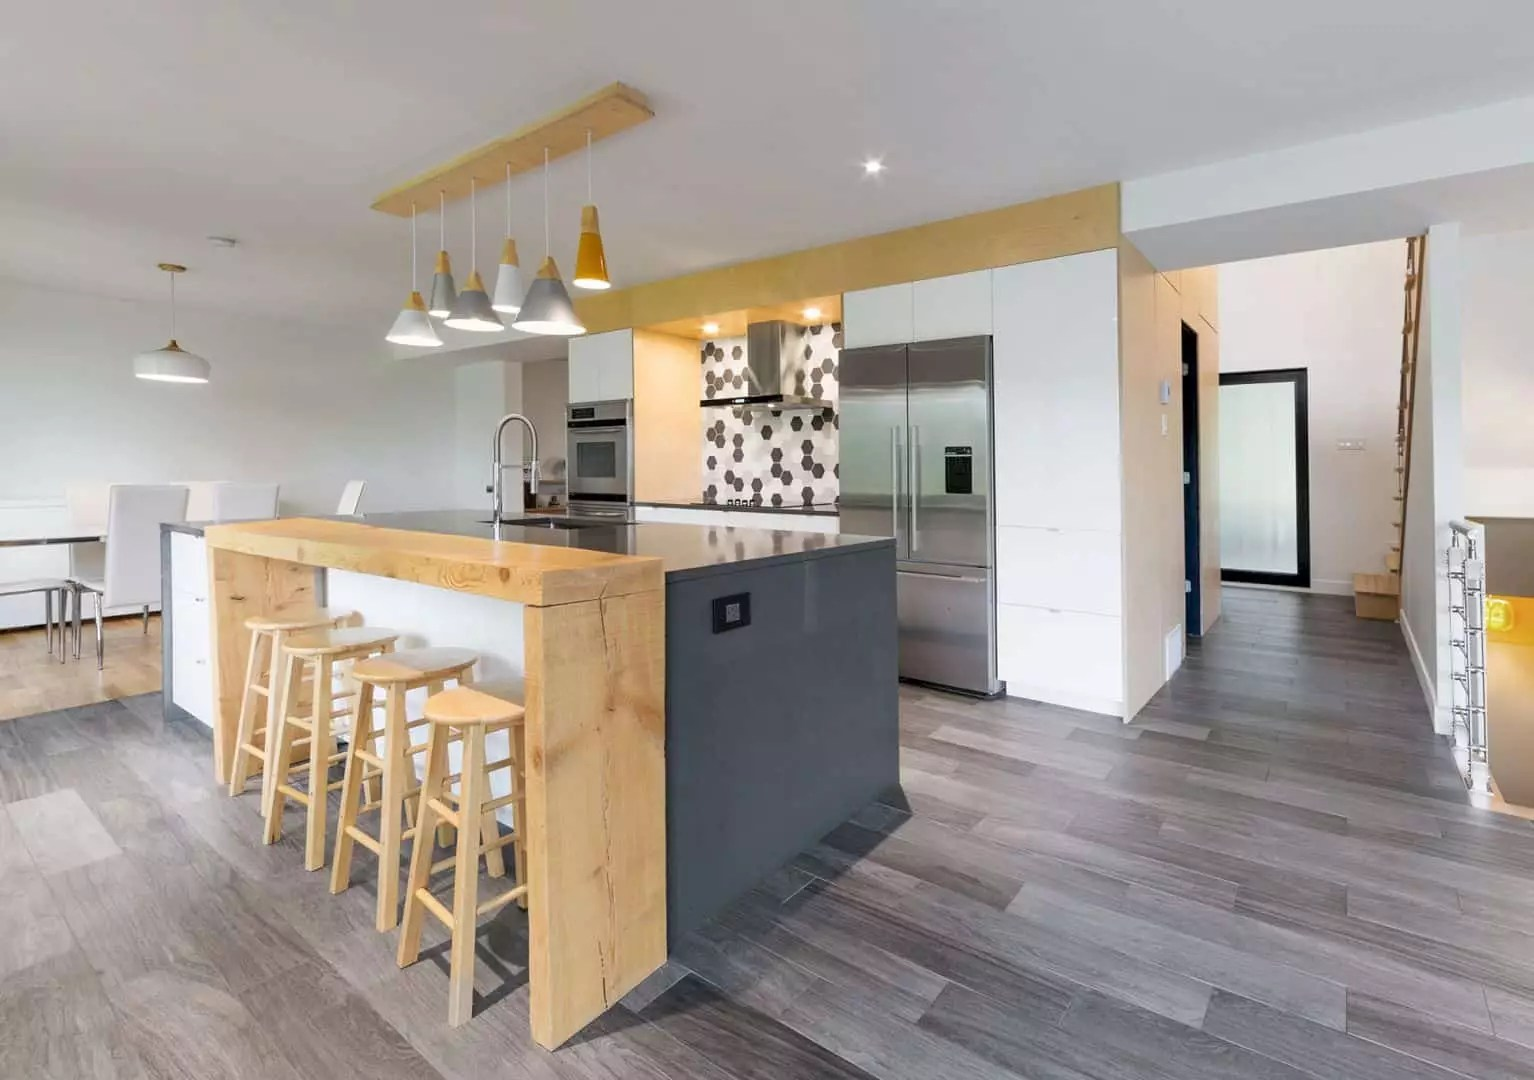 Maison Unifamiliale Repentigny: Renovation of A Single-Family Home into A Modern Home in Suburbs